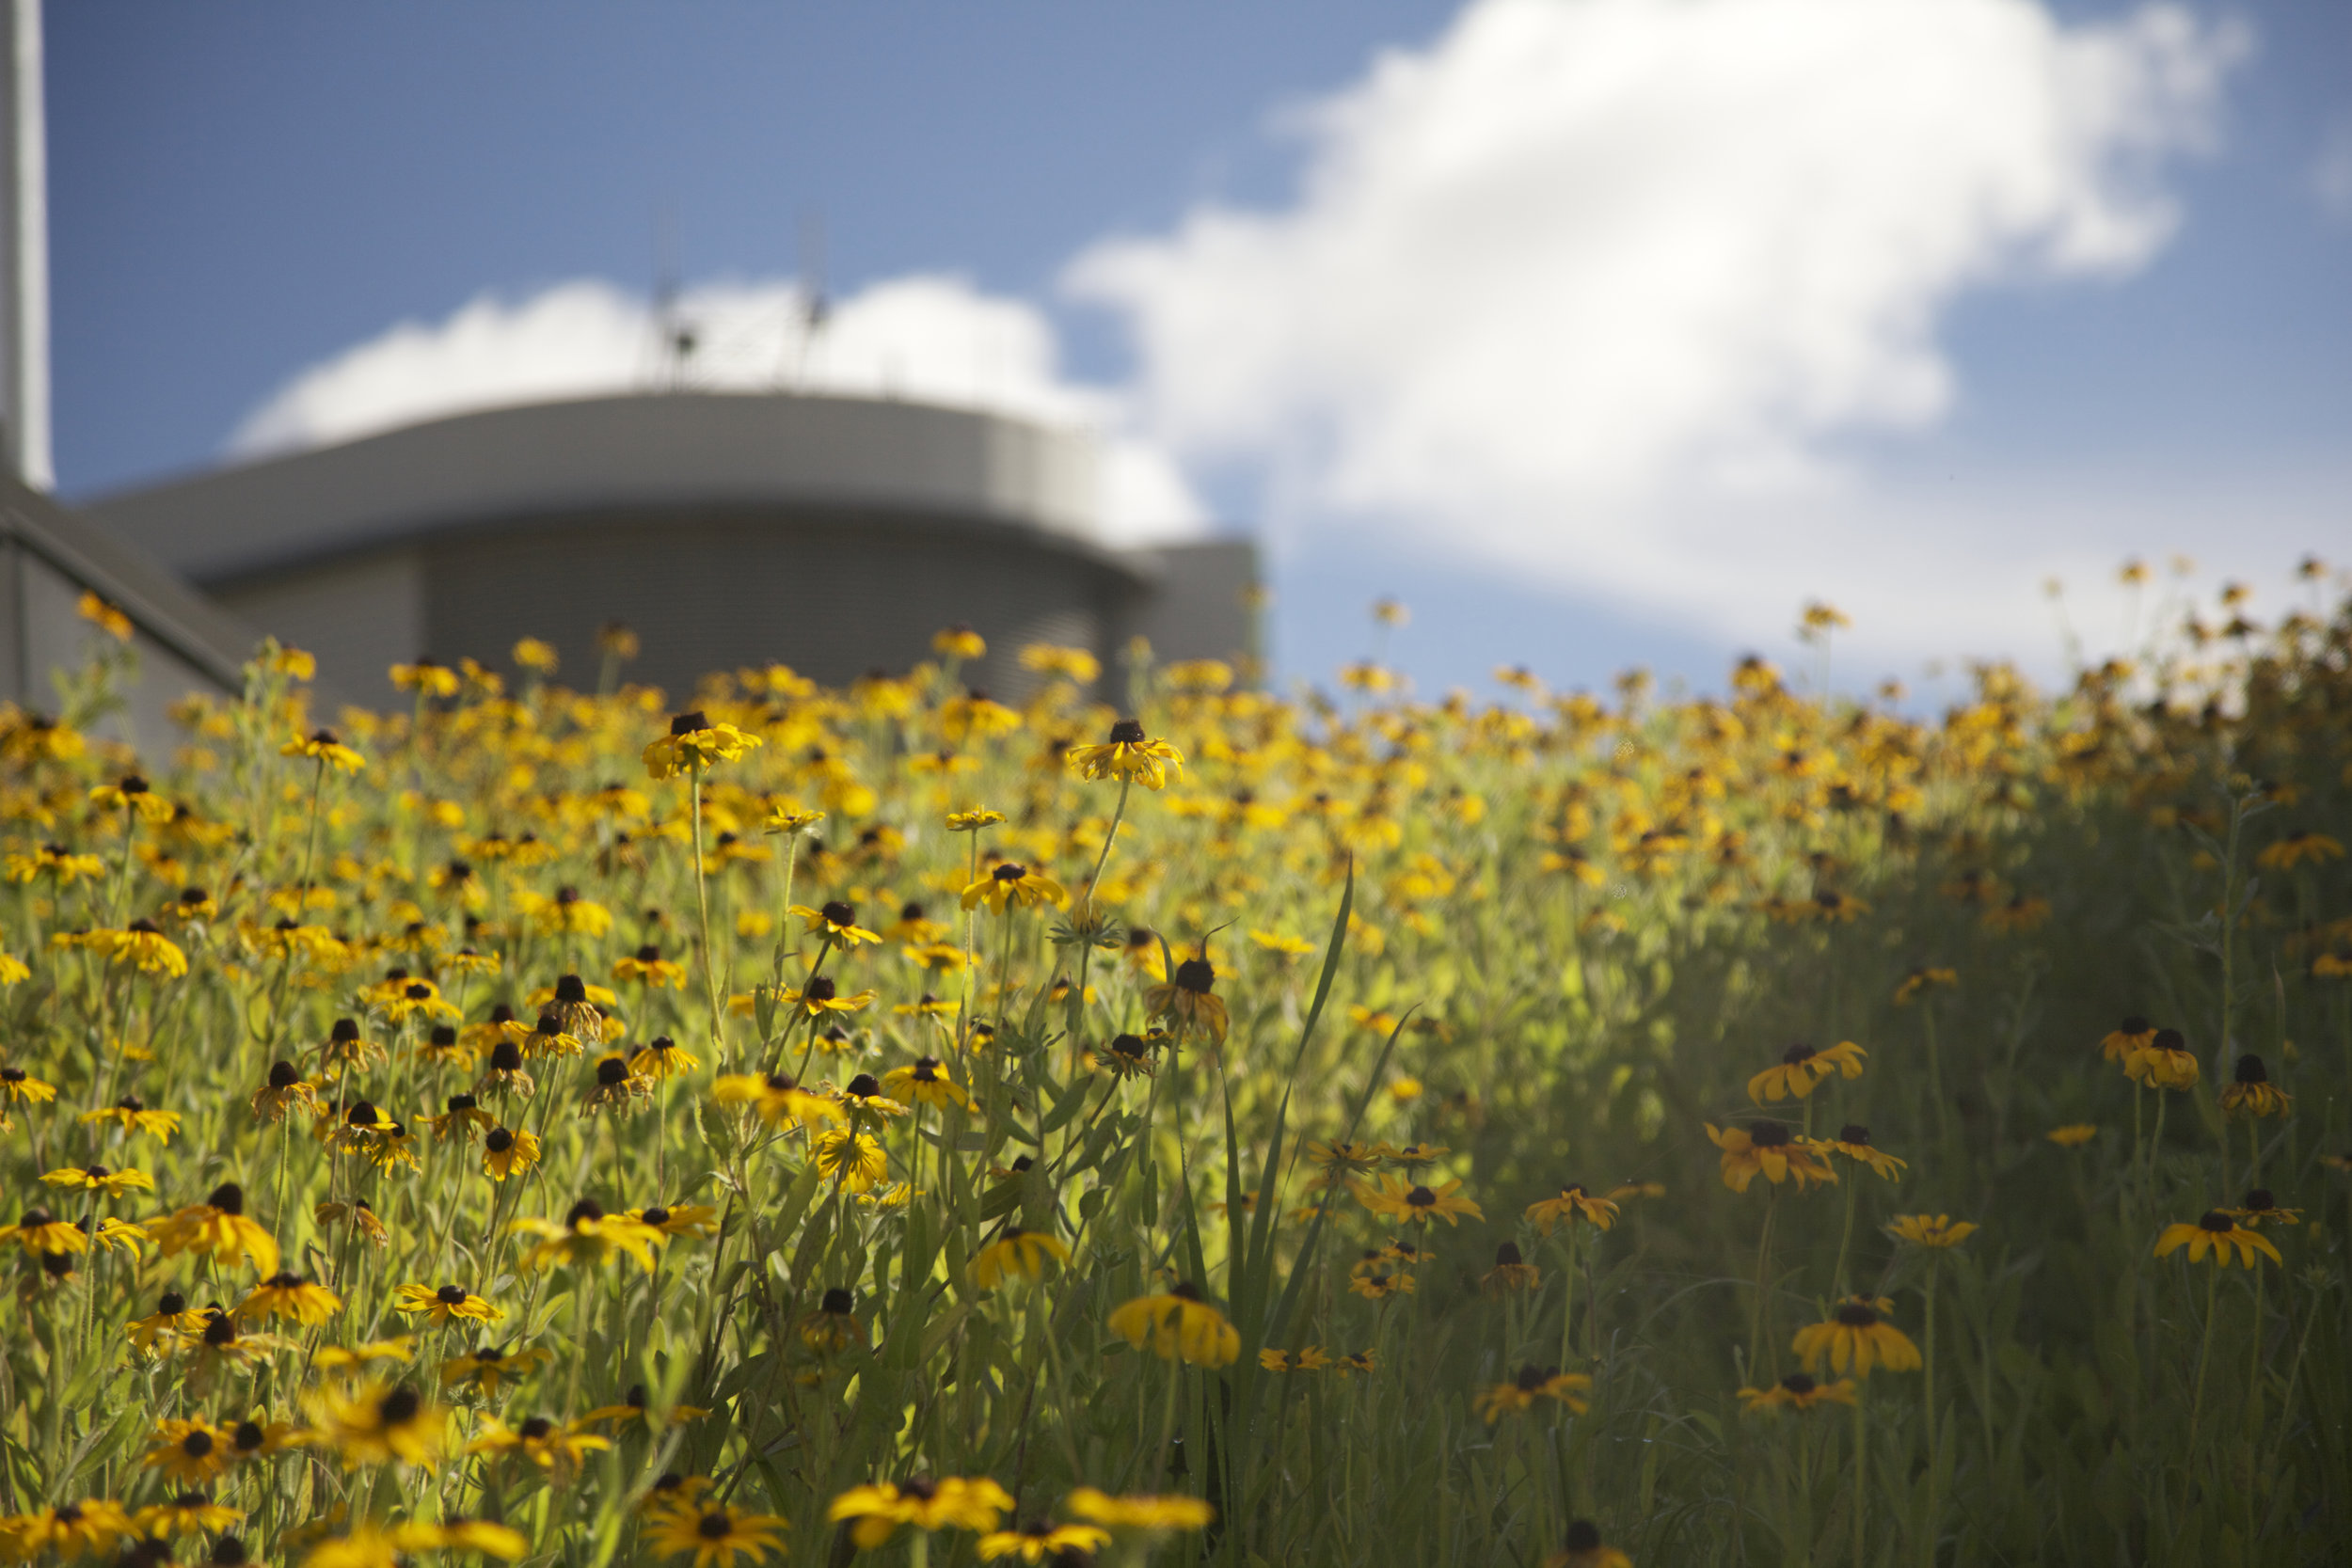 our green roof systems save more water. -